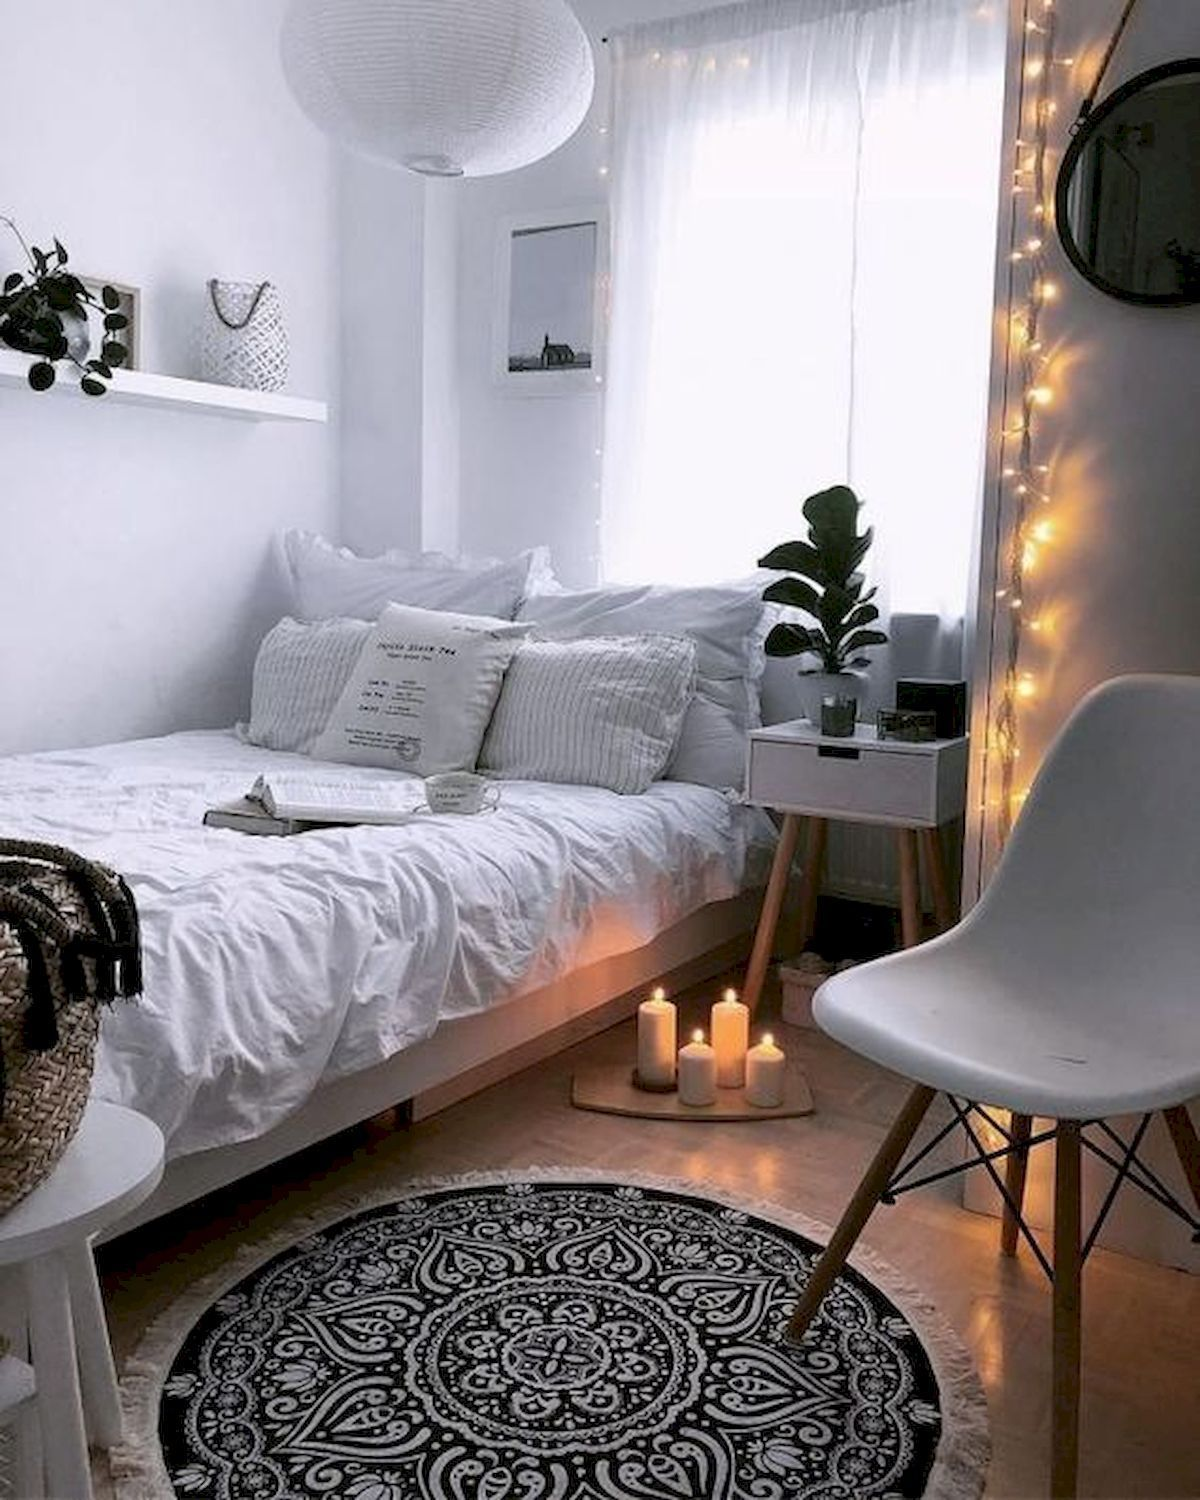 70 Fantastic College Bedroom Decor Ideas And Remodel 34 Worldecor Co Small Apartment Bedrooms College Bedroom Decor Bedroom Design Trends